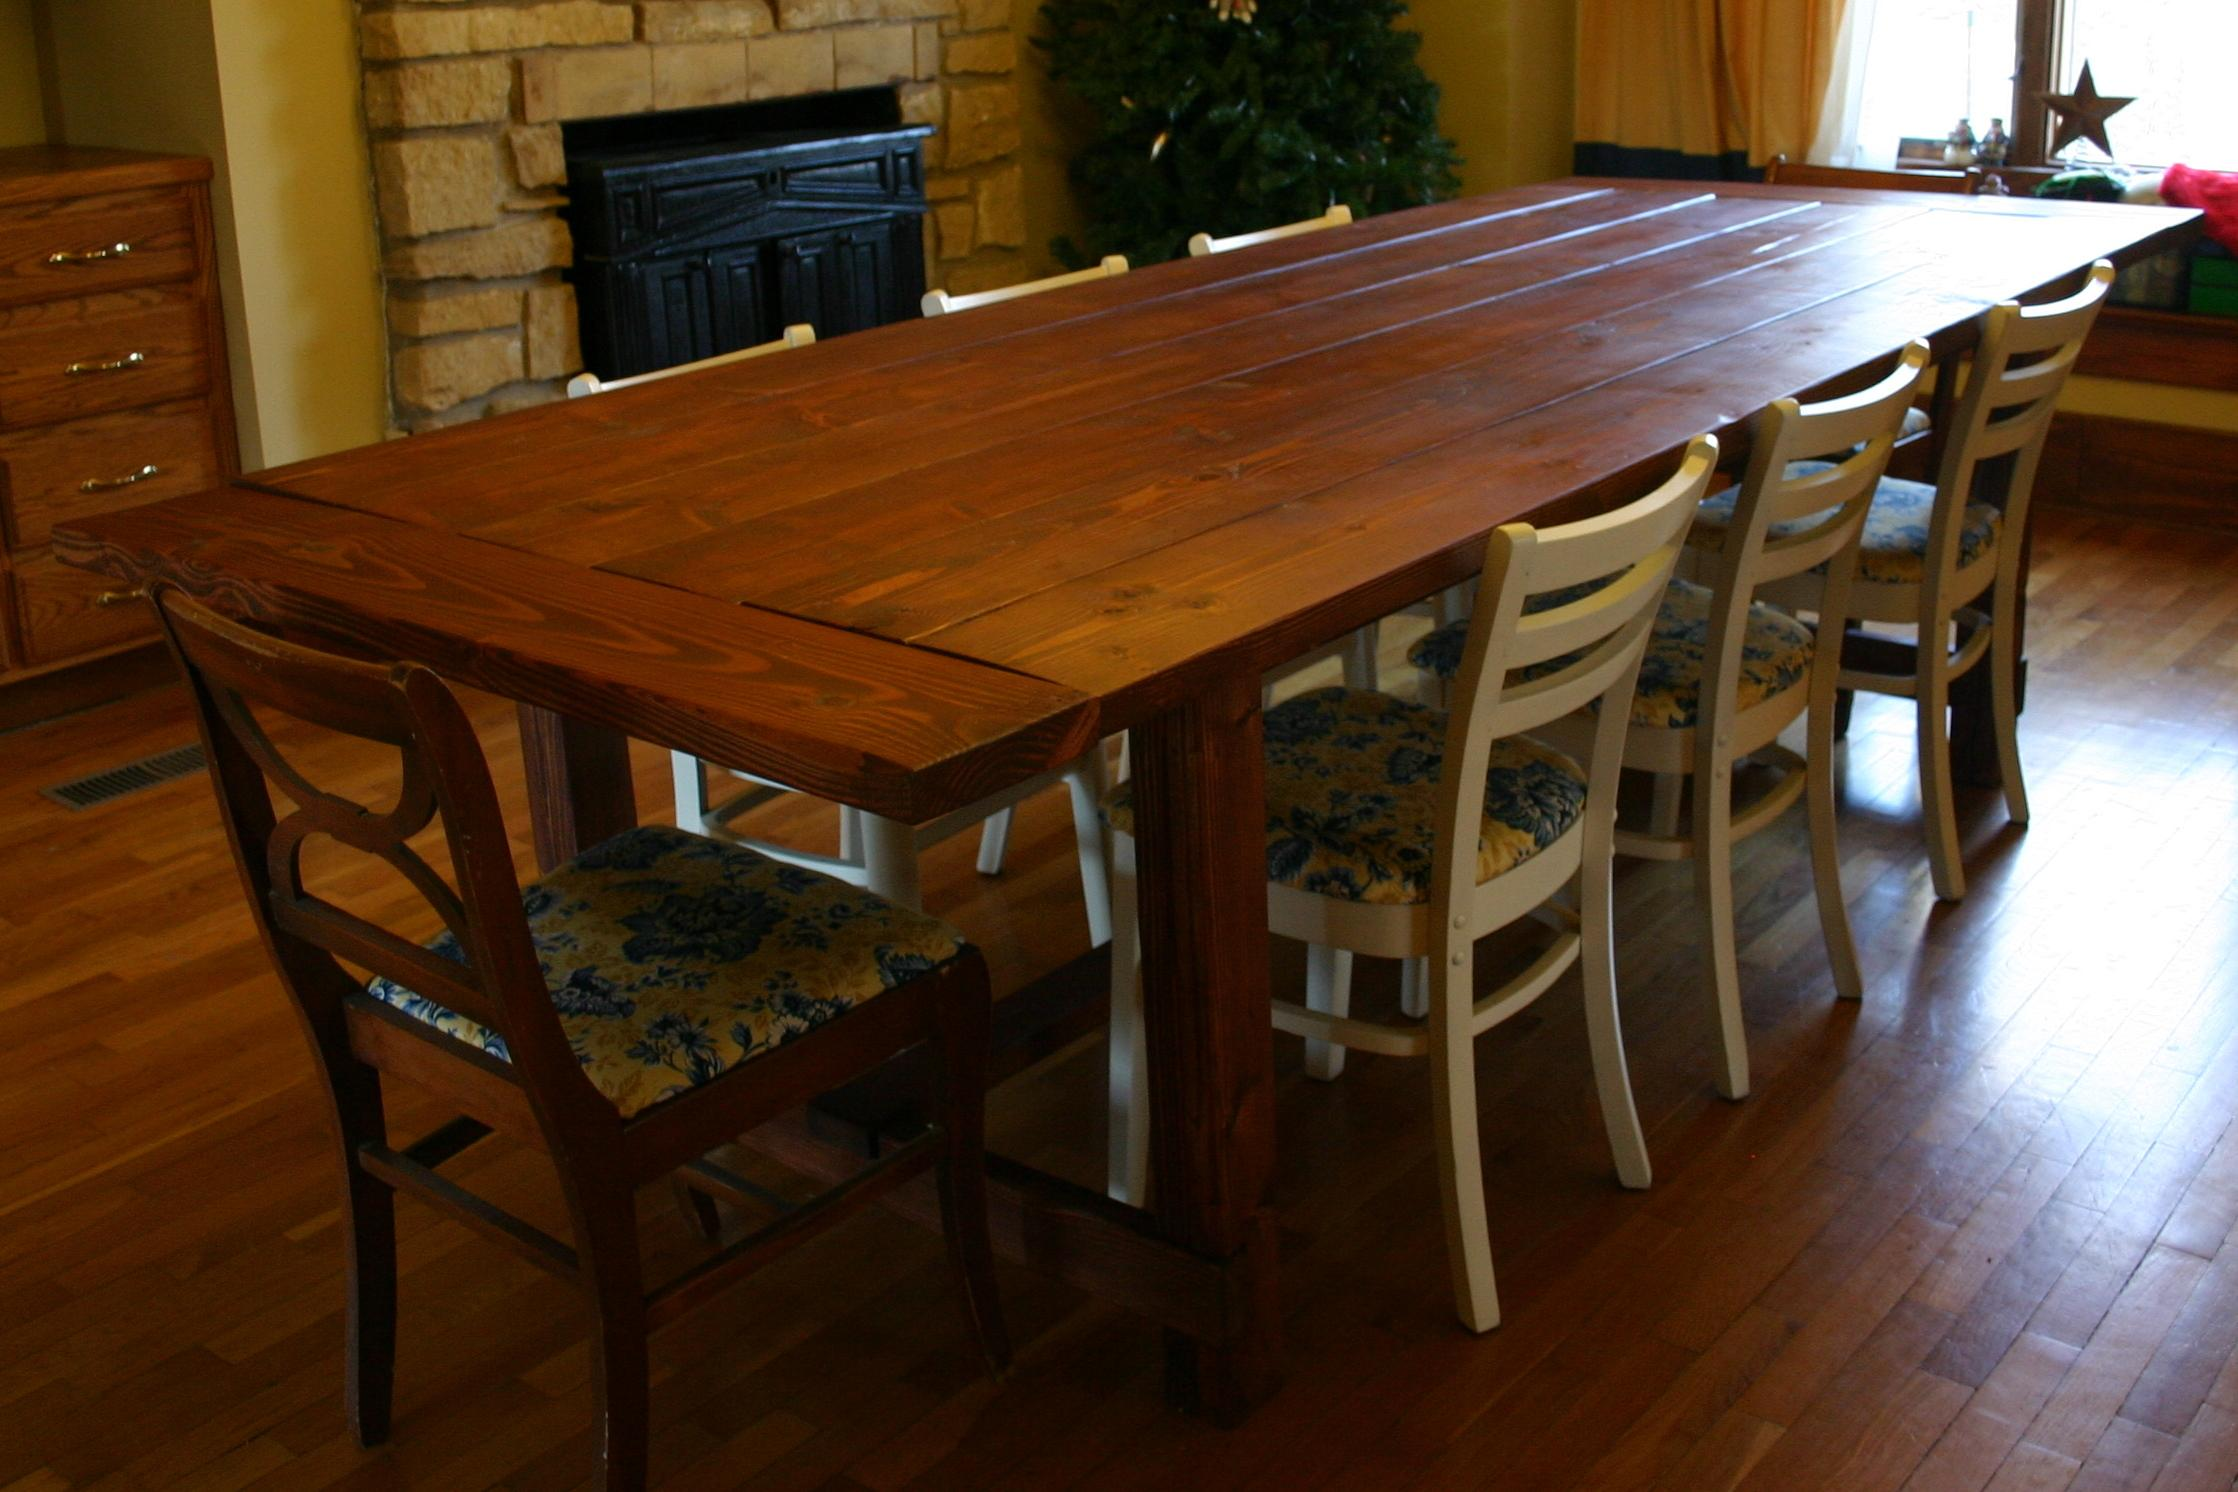 10 Seat Dining Room Table 10 Seater Dining Room Table And Chairs Modern Kitchen Furniture